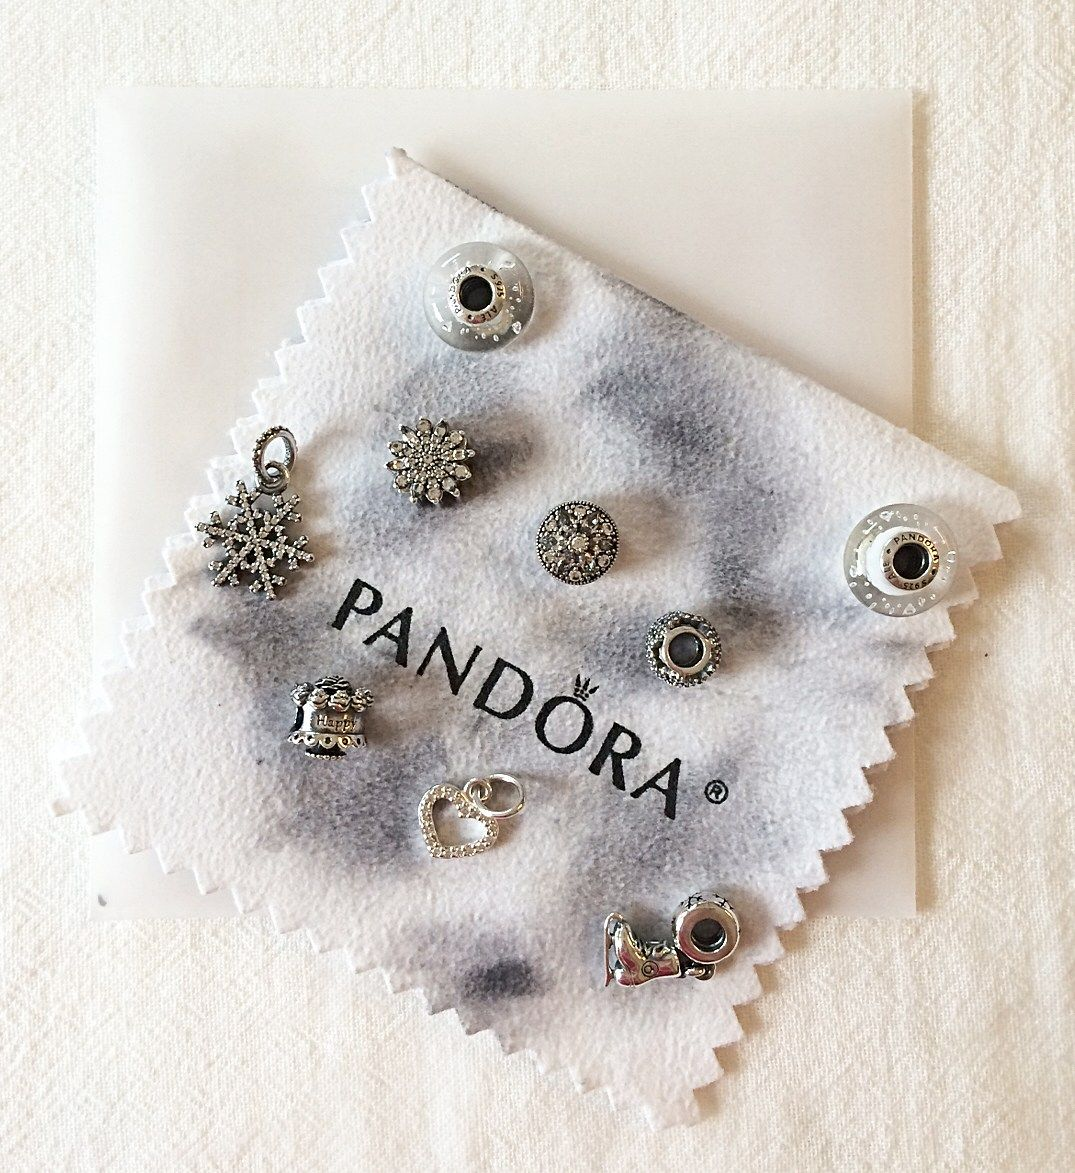 9 Steps to Clean Your PANDORA Bracelet (With images